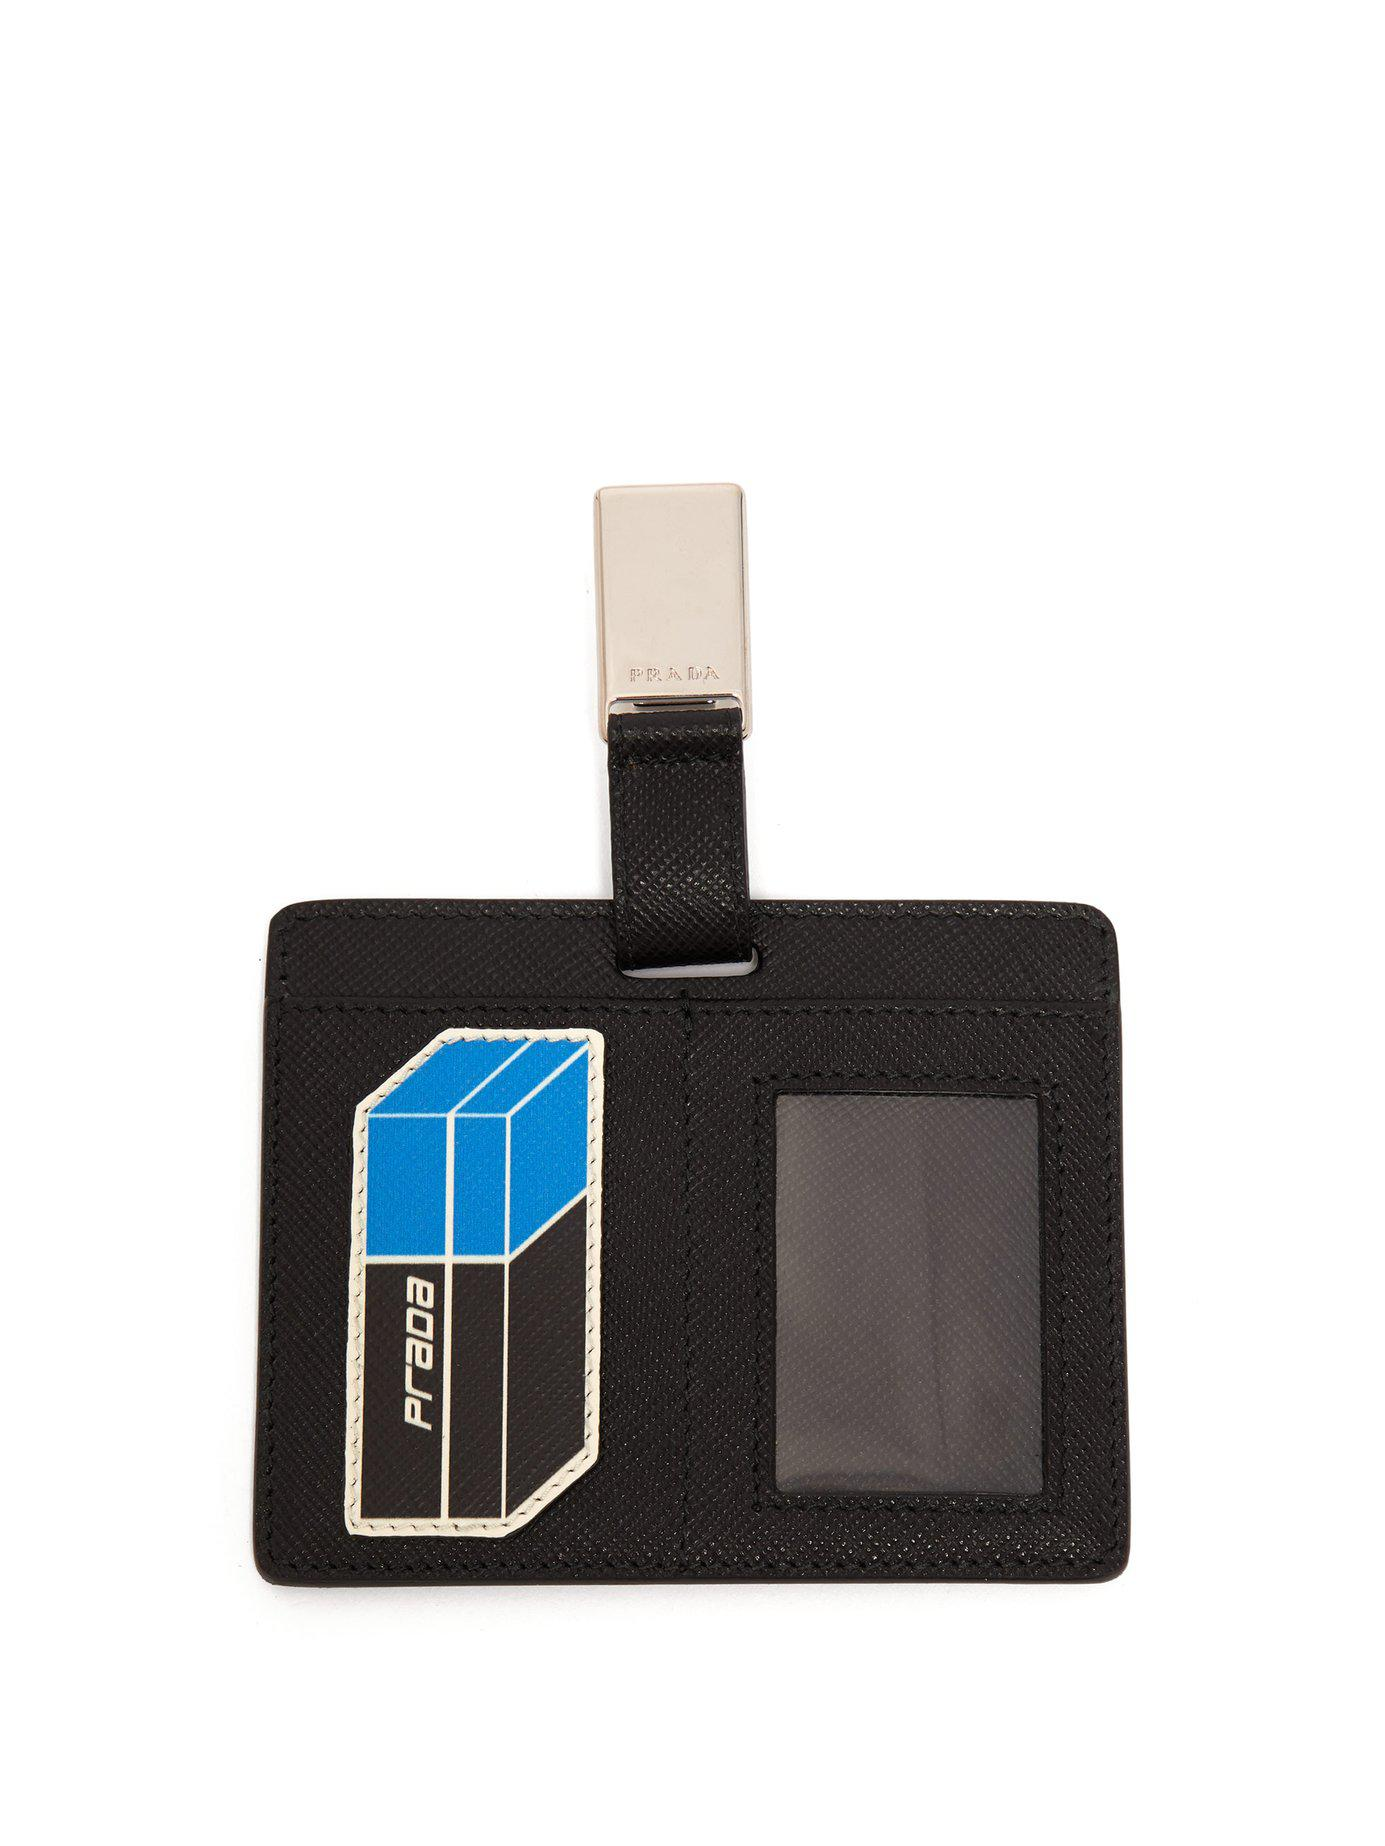 116a29c369a0 Prada Saffiano Leather Clip On Cardholder Badge in Black for Men - Lyst